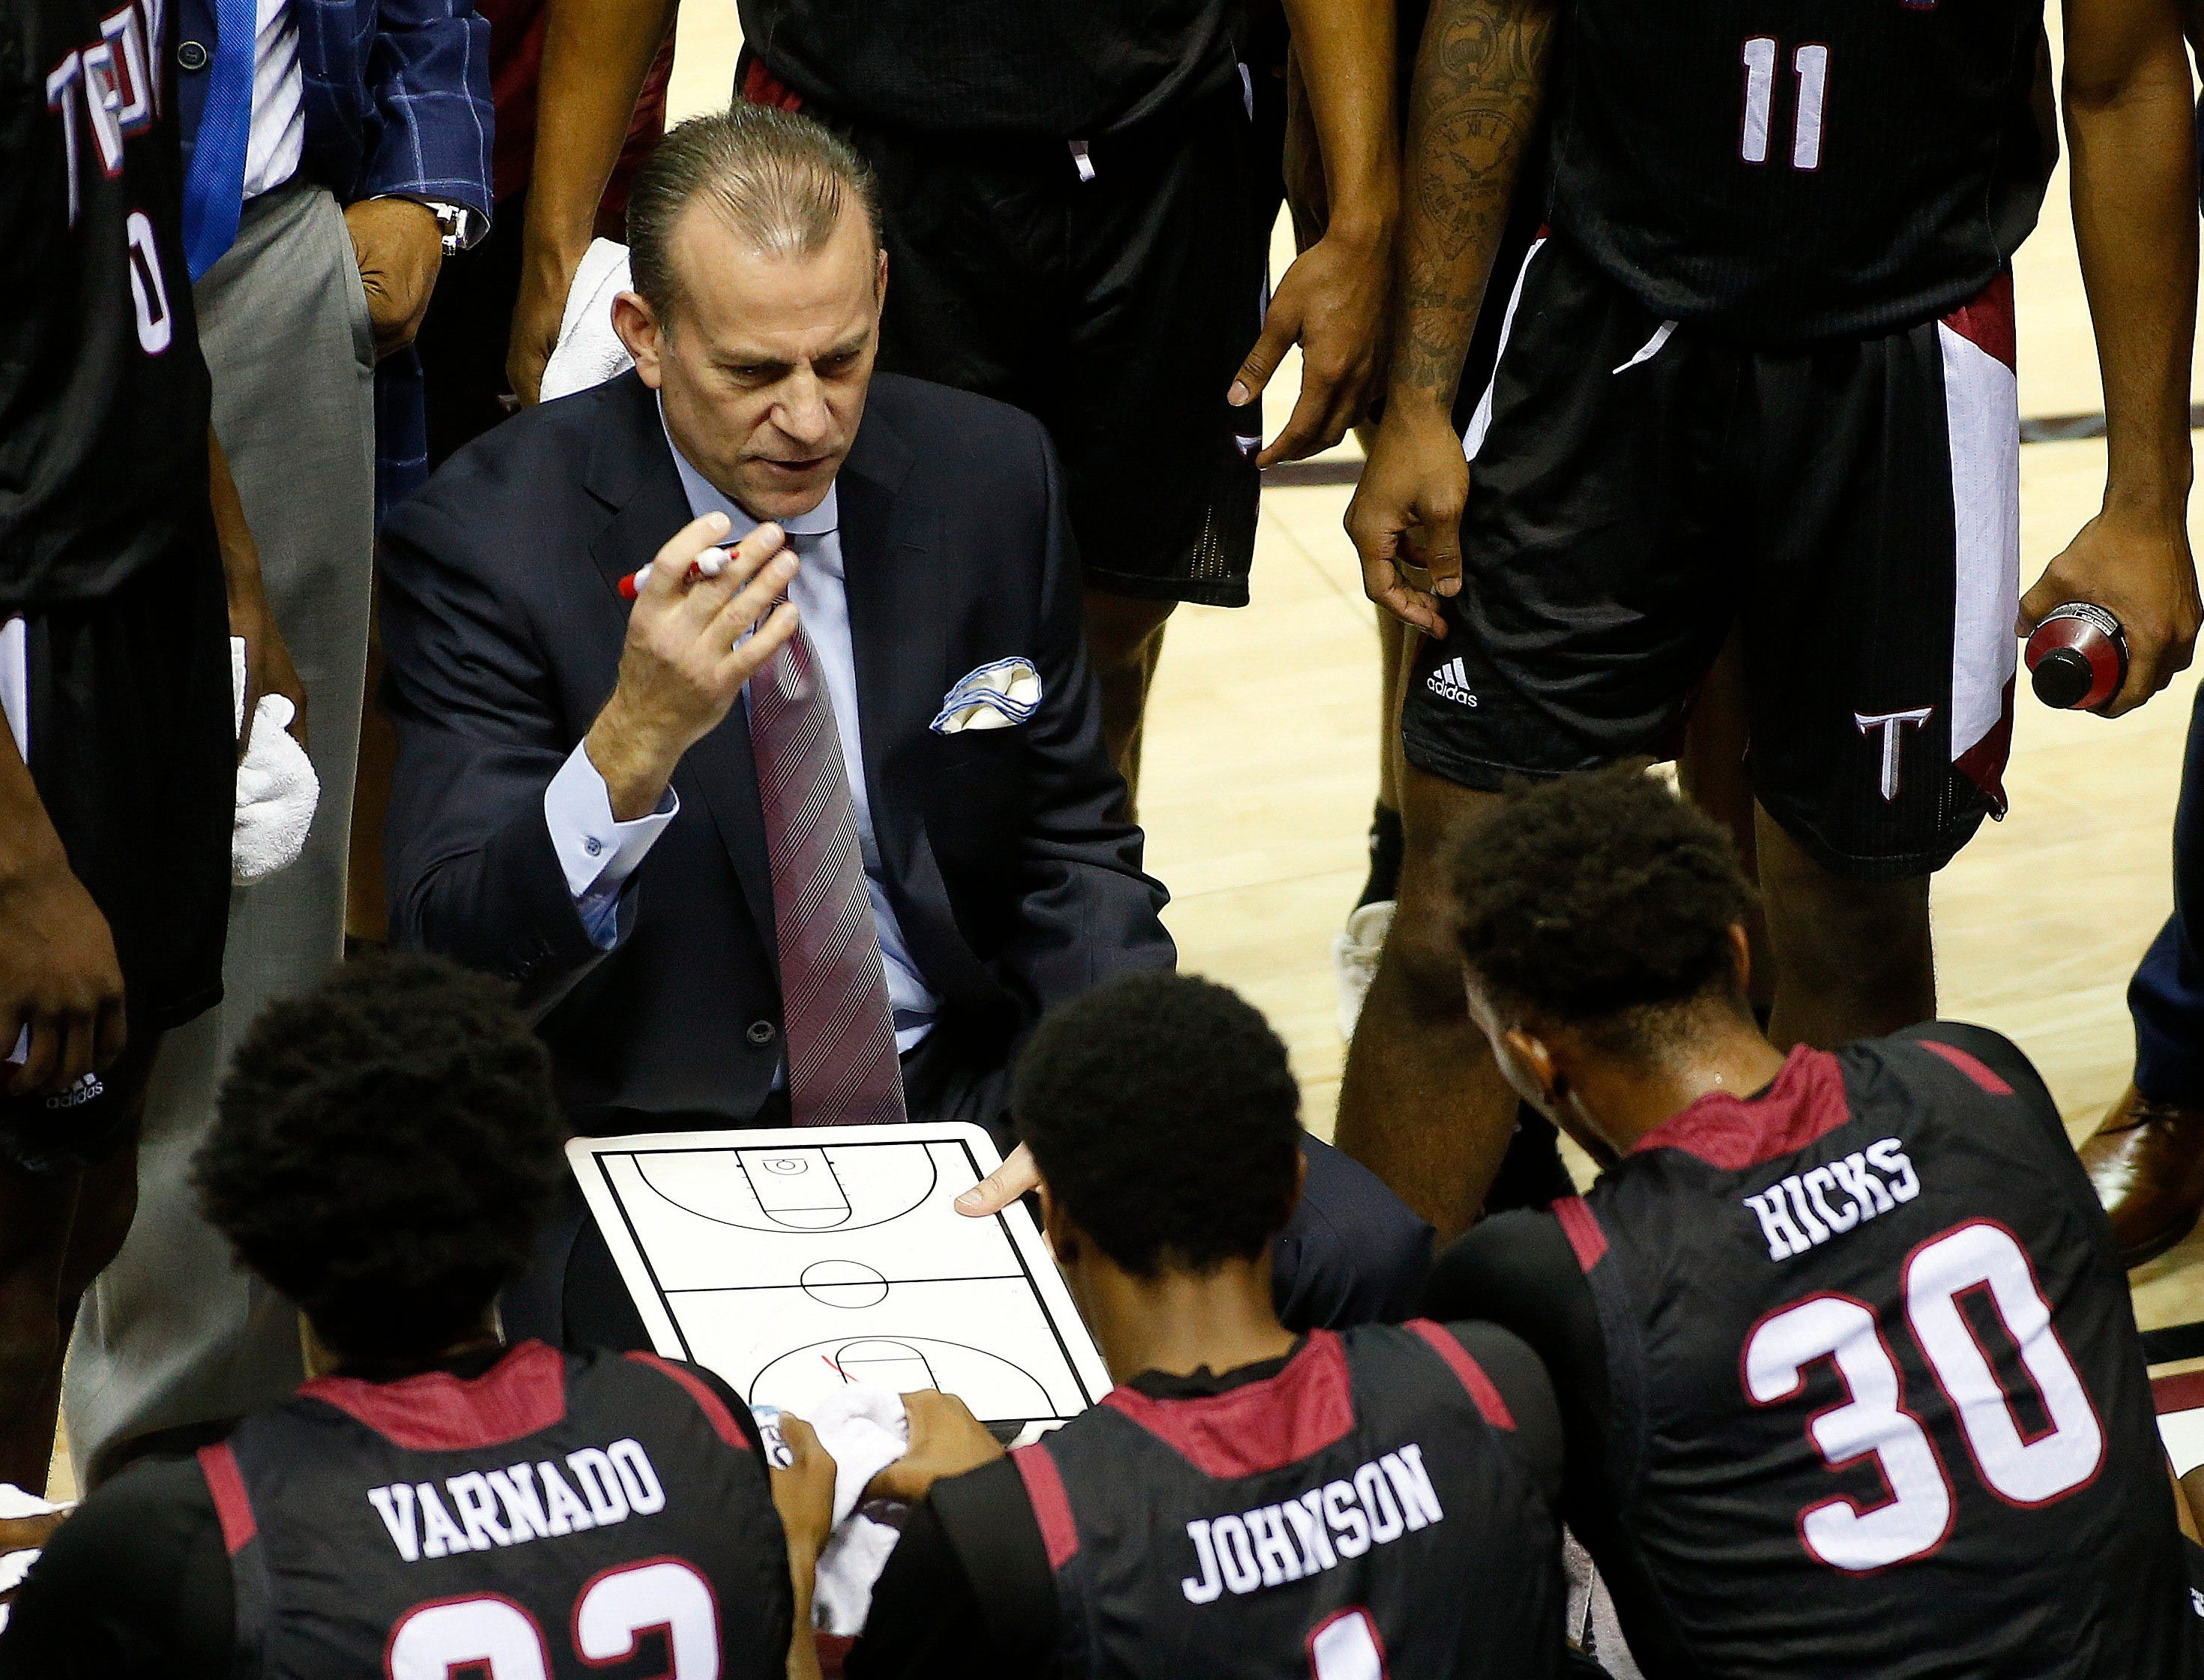 Dec 3, 2018; Tallahassee, FL, USA;  Troy Trojans head coach Phil Cunningham draws up a play while playing against the Florida State Seminoles at Donald L. Tucker Center during the first half. Mandatory Credit: Glenn Beil-USA TODAY Sports